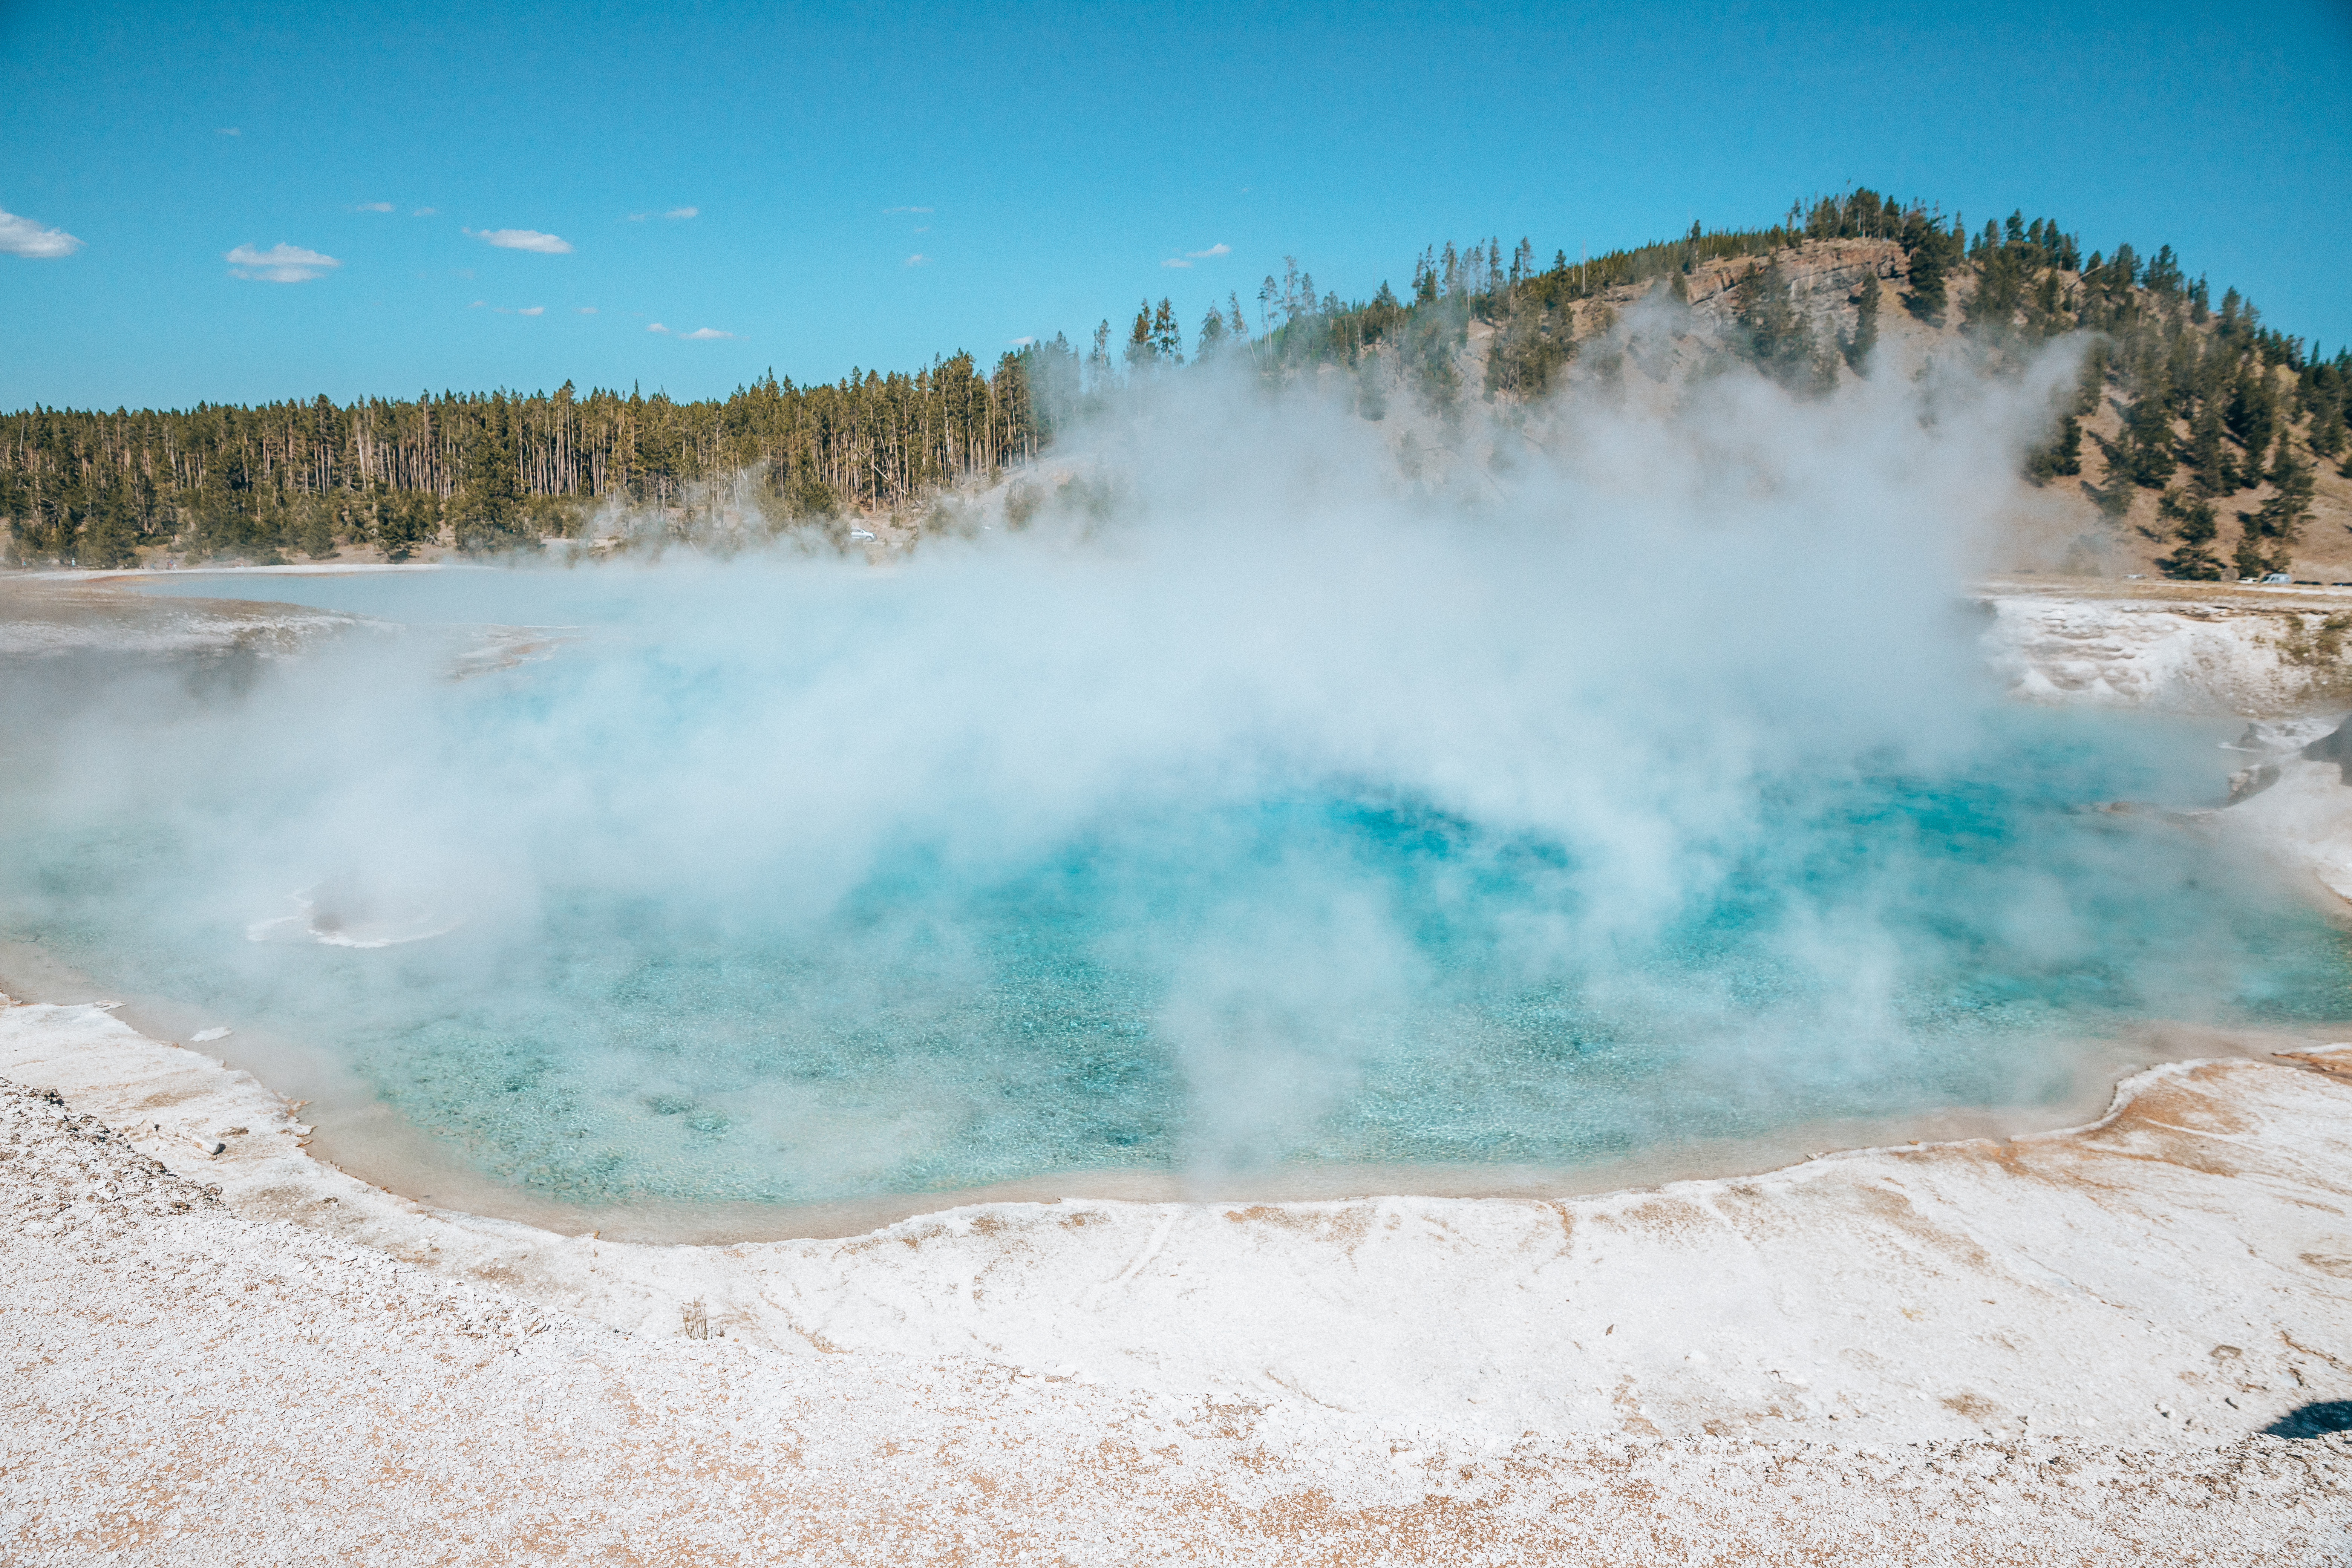 Turquoise boiling Geyser Excelsior at Yellowstone